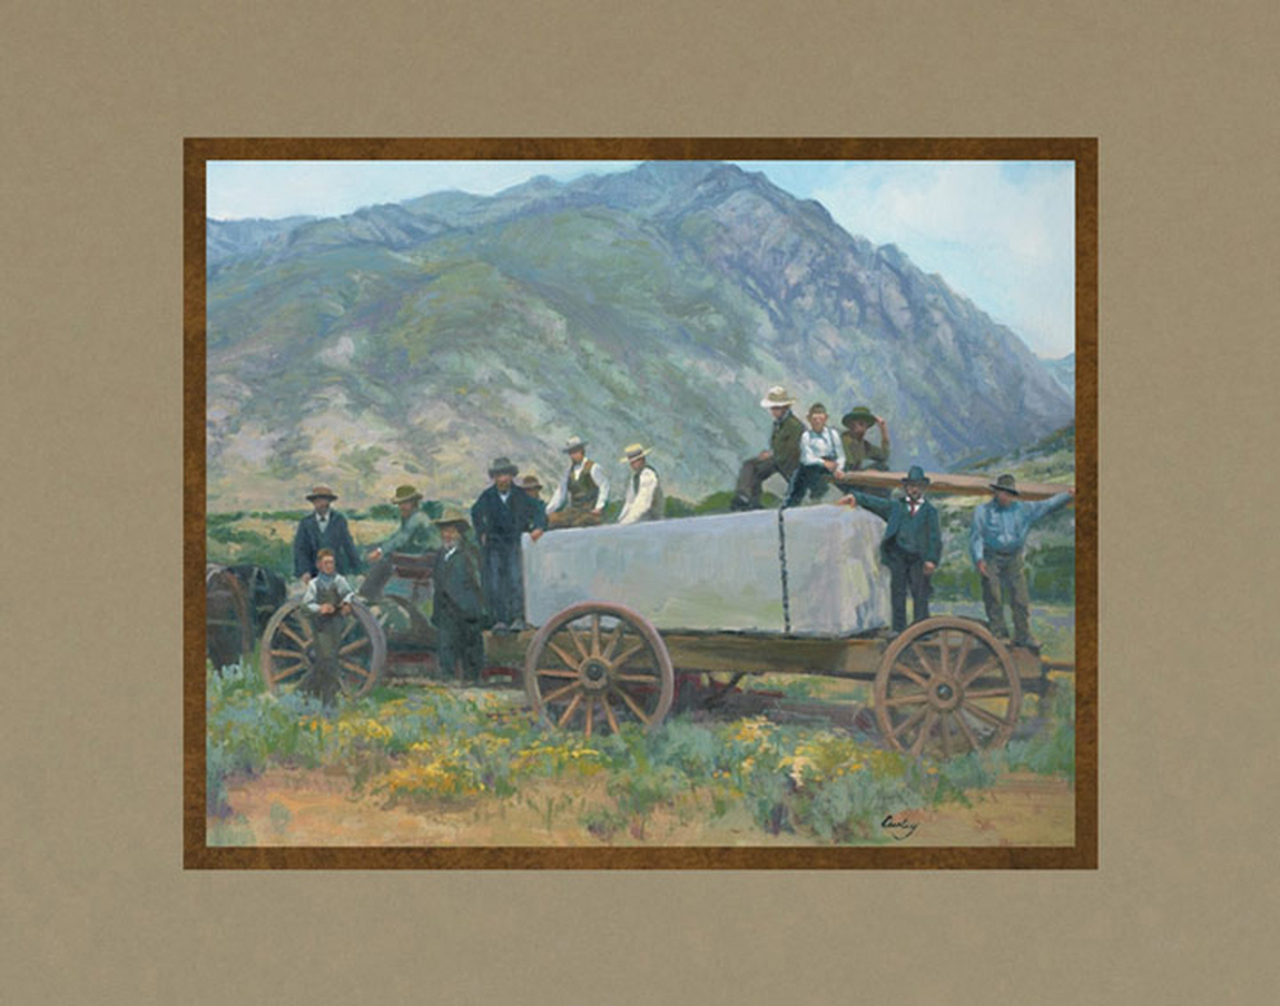 AF -11×14 Print - Builders of the Kingdom / 11x14 matted/Linda Curley Christensen<BR>王国の働き手 11×14 マットプリント